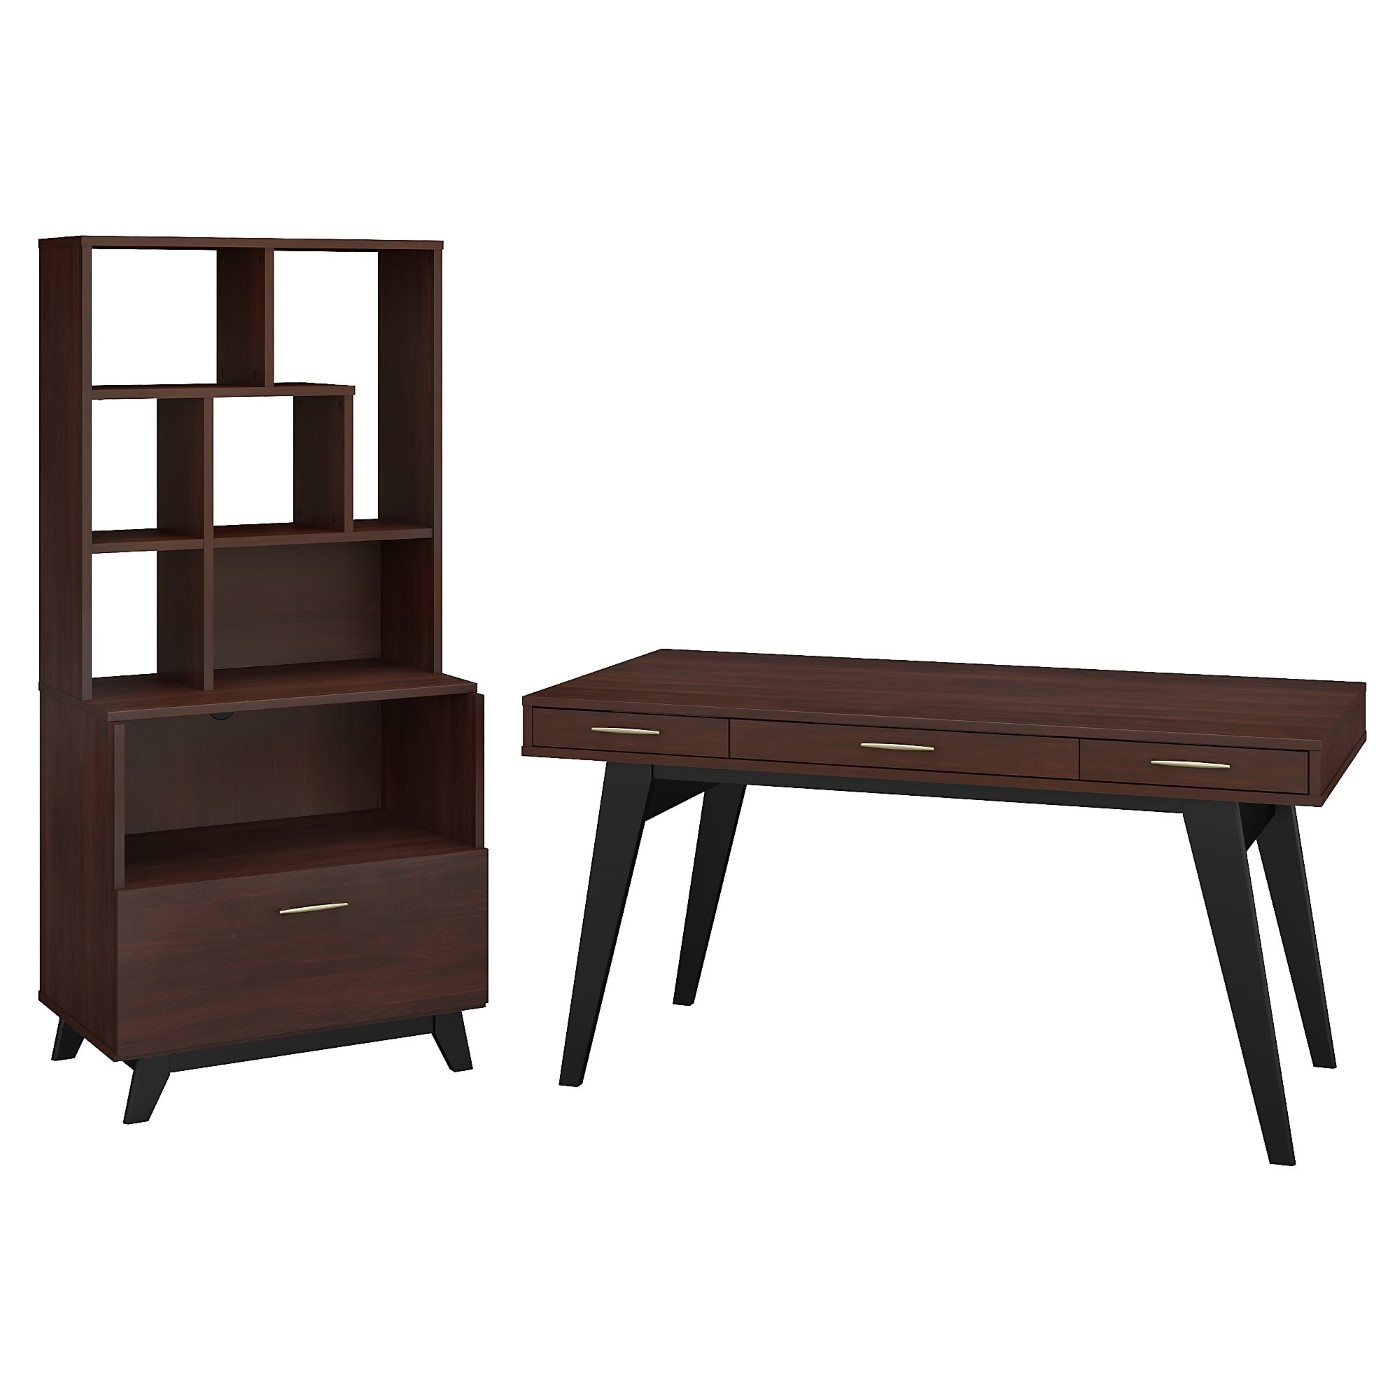 </b></font><b>The kathy ireland� Centura 60W x 30D Writing Desk with Lateral File Cabinet and Bookcase Hutch is Sustainable Eco Friendly Furniture. Includes Free Shipping! 30H x 72L x 72W</b></font>  VIDEO BELOW. <p>RATING:&#11088;&#11088;&#11088;&#11088;&#11088;</b></font></b>